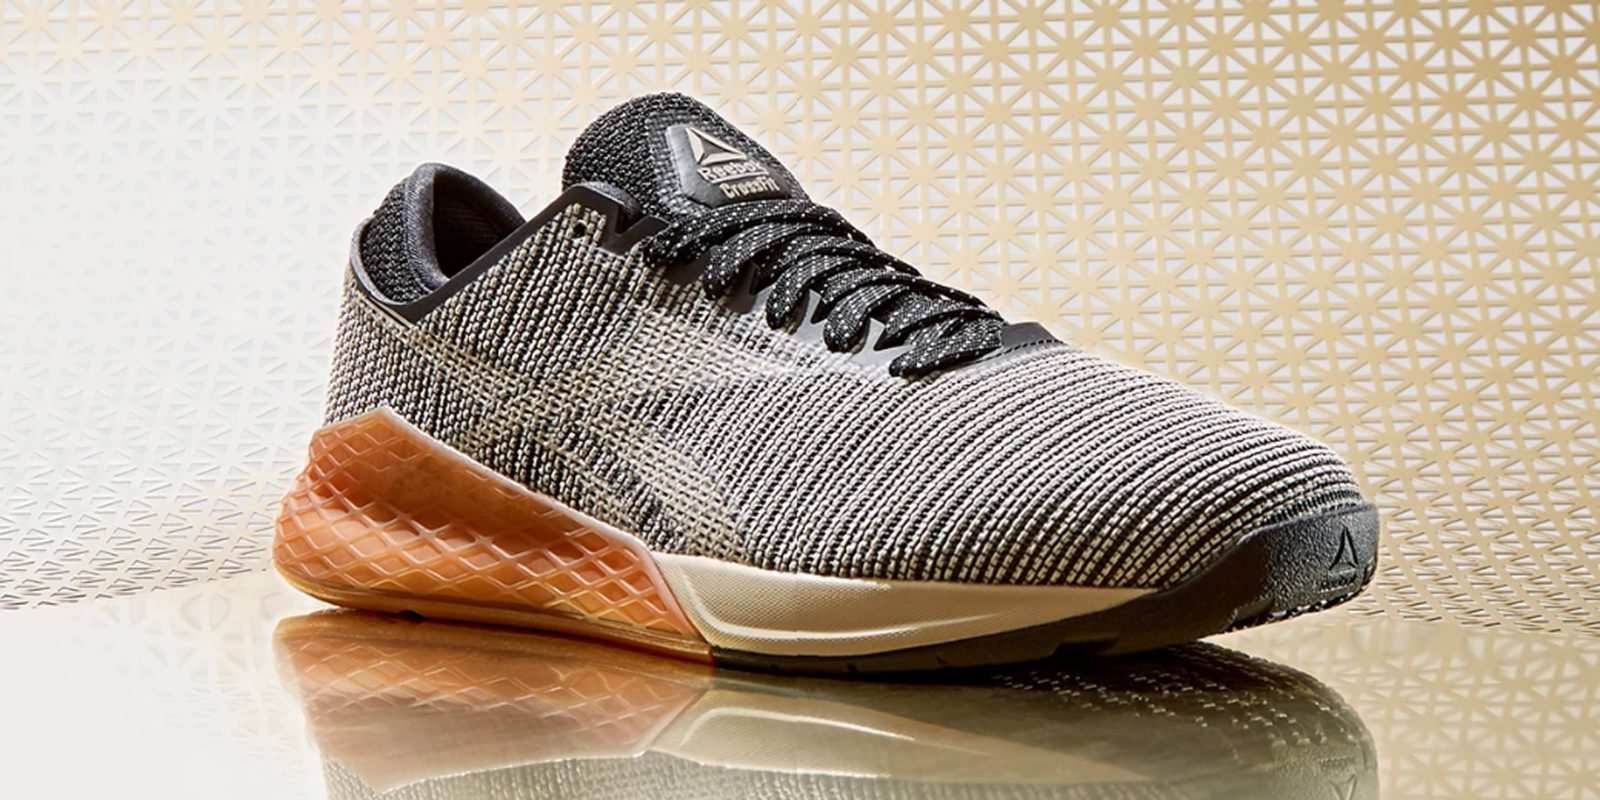 Reebok boosts your workouts with 40% off sitewide: Running shoes, outerwear, more